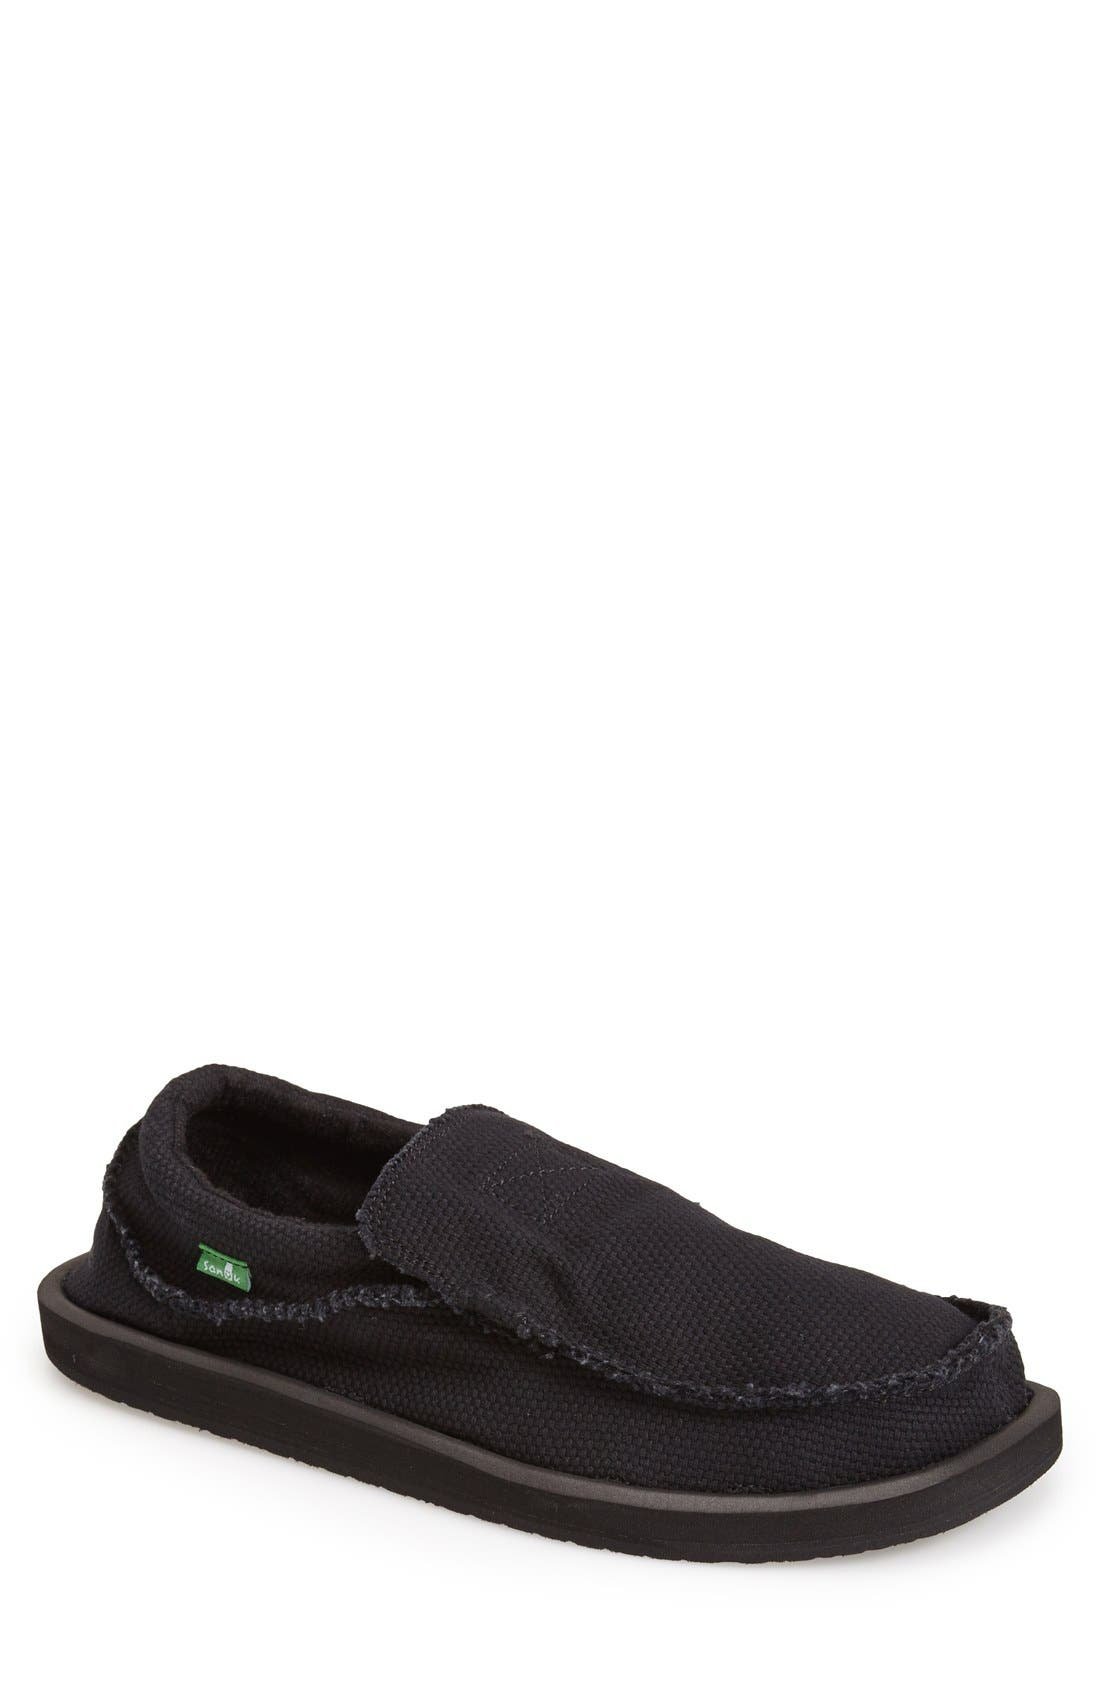 'Chiba' Slip-On,                         Main,                         color, Blackout